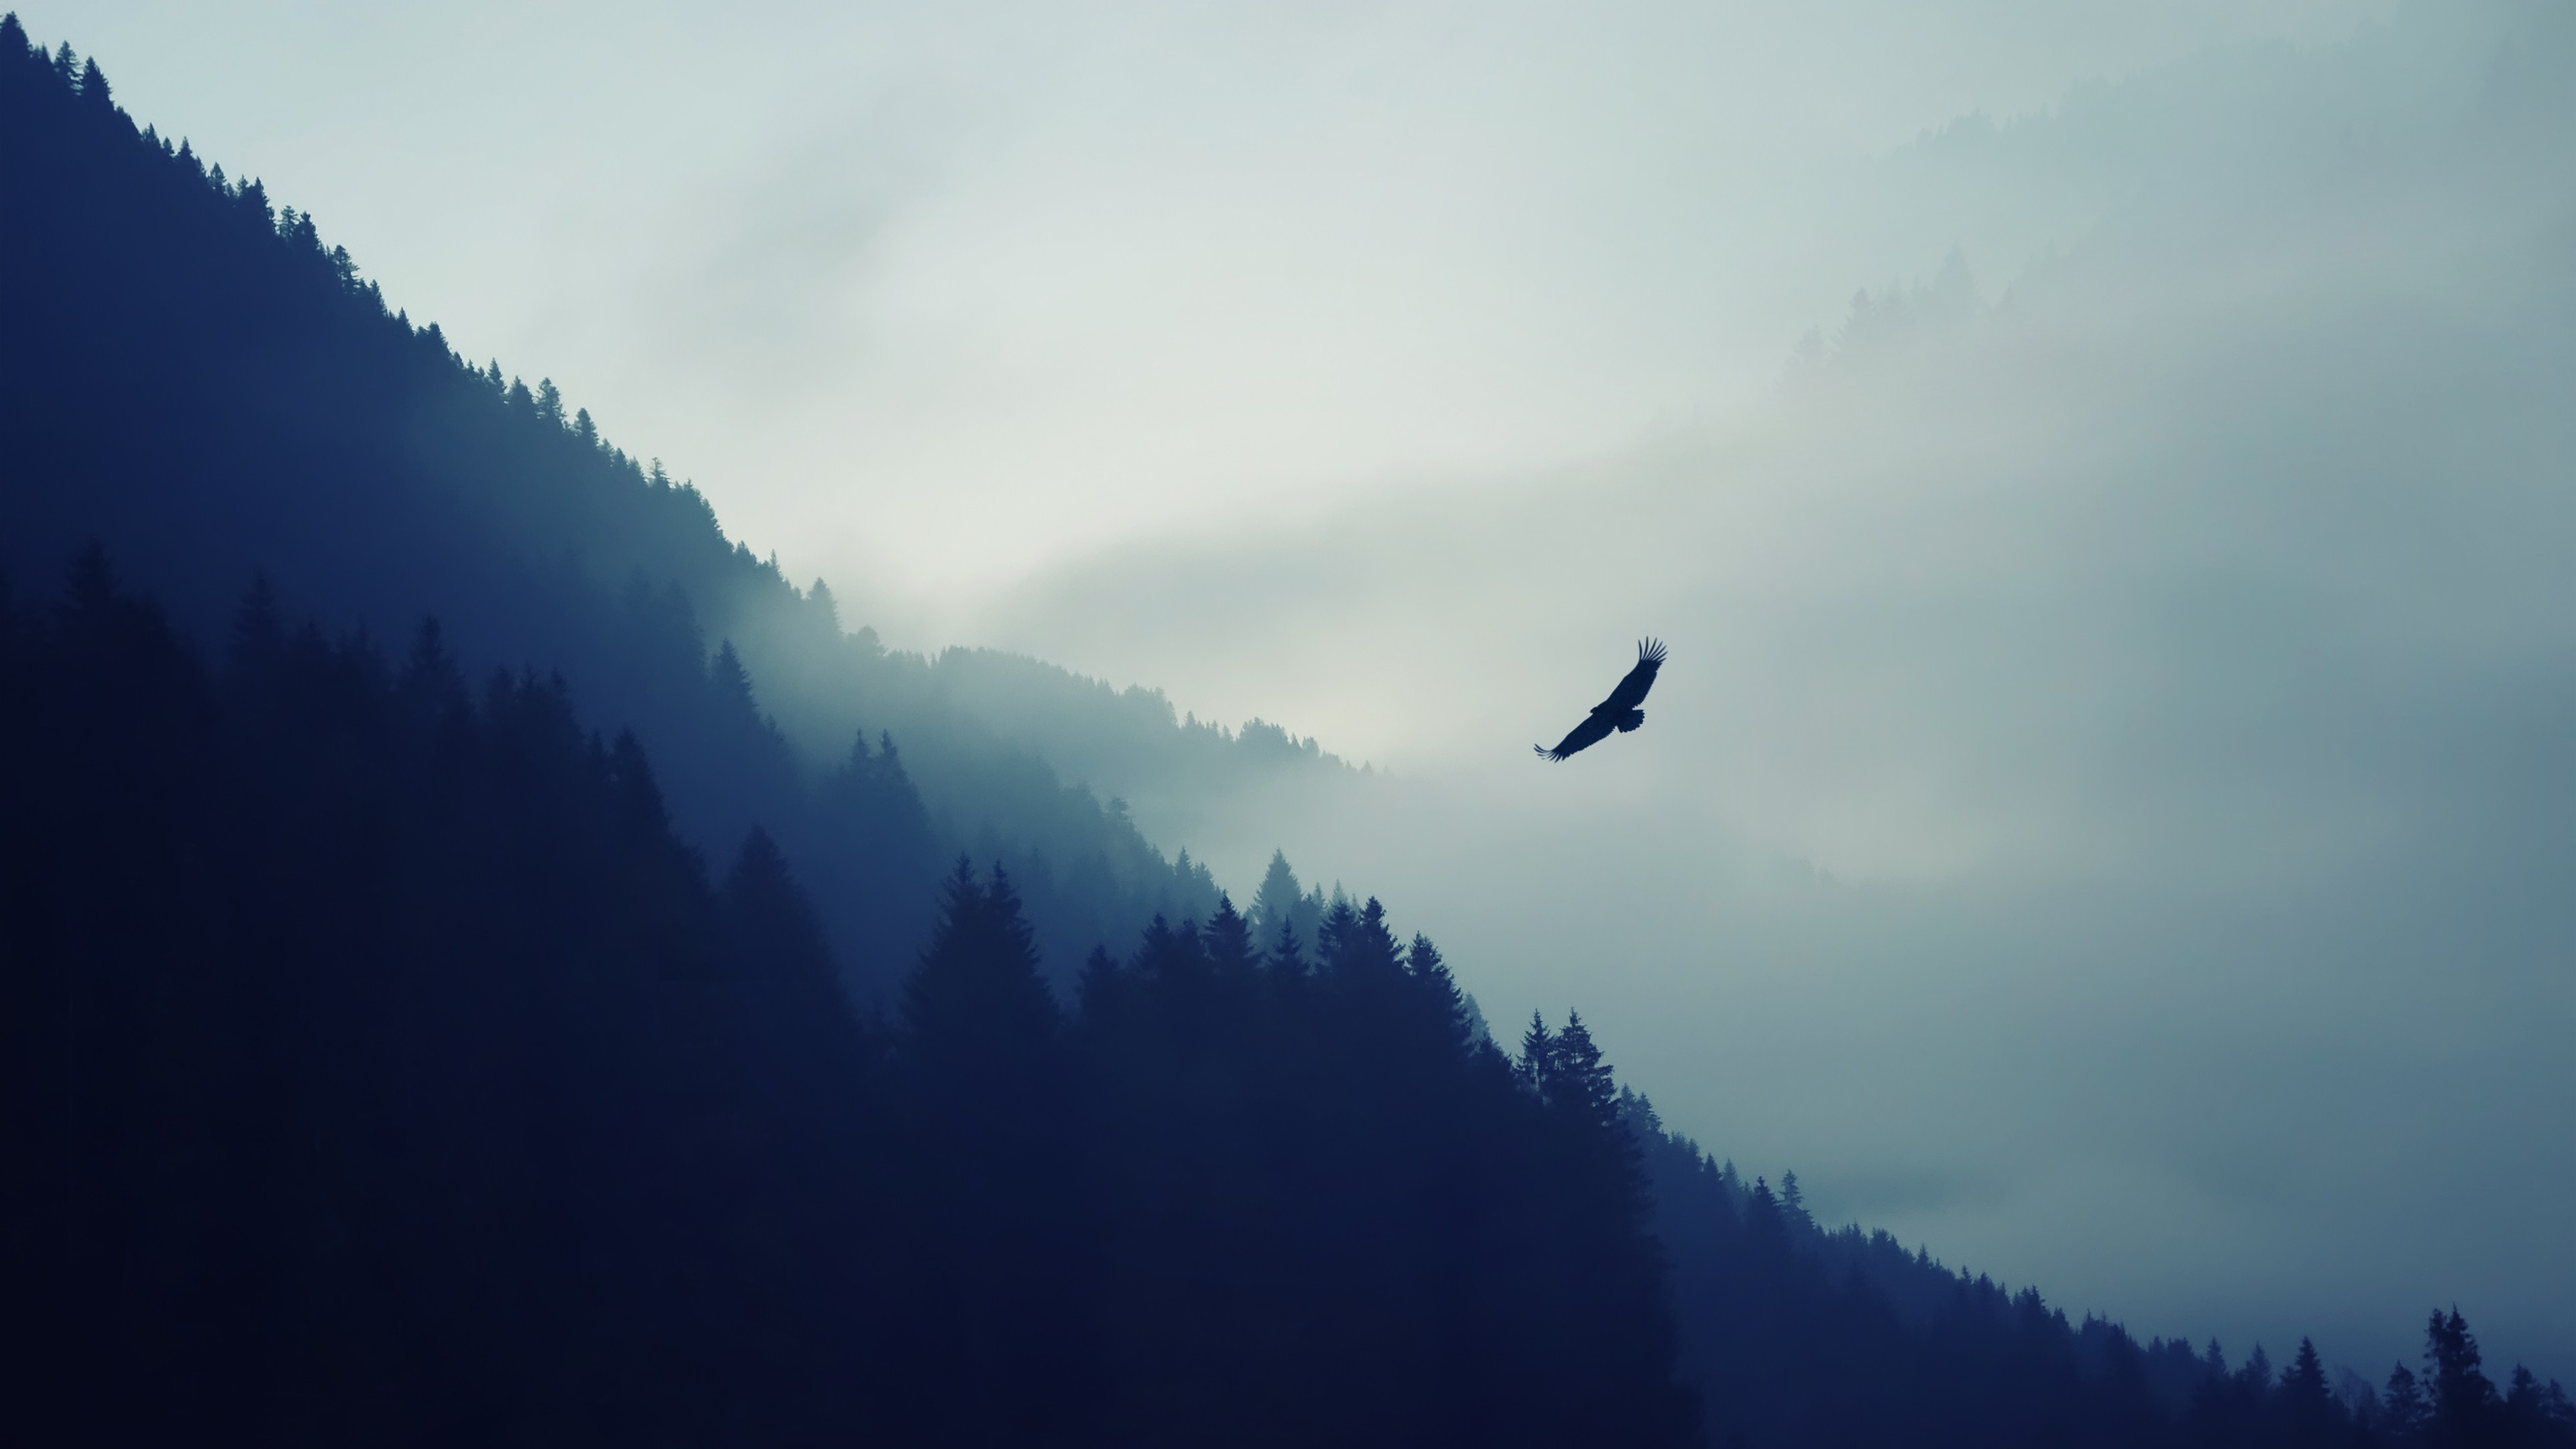 nature_mountain_eagle_fog_landscape_ultr